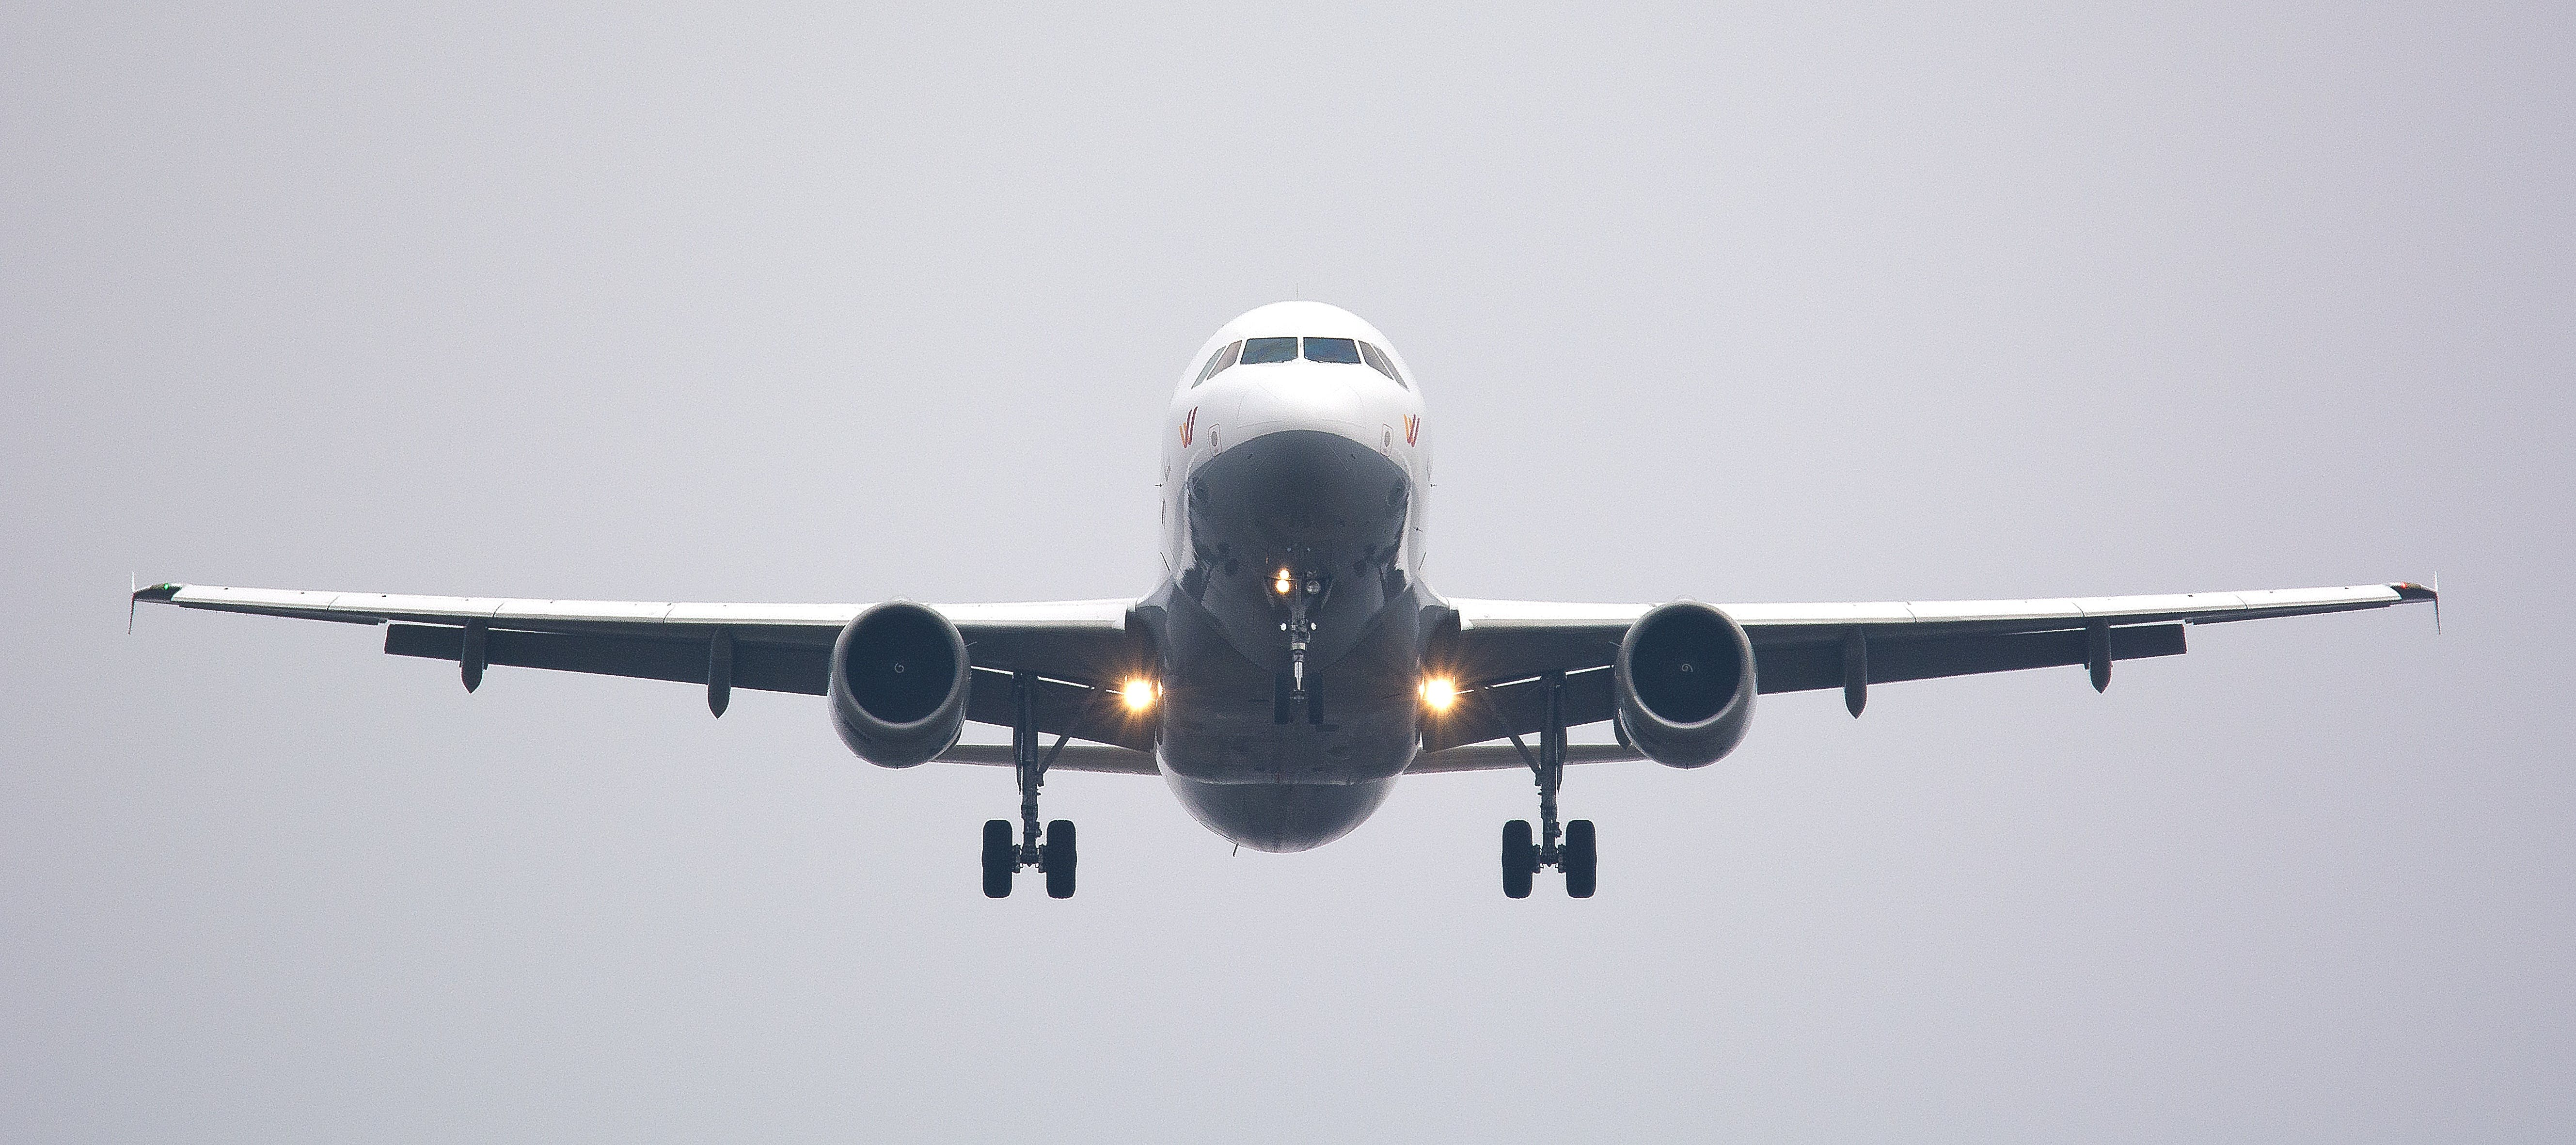 Time Lapse Photography of White Commercial Airplane